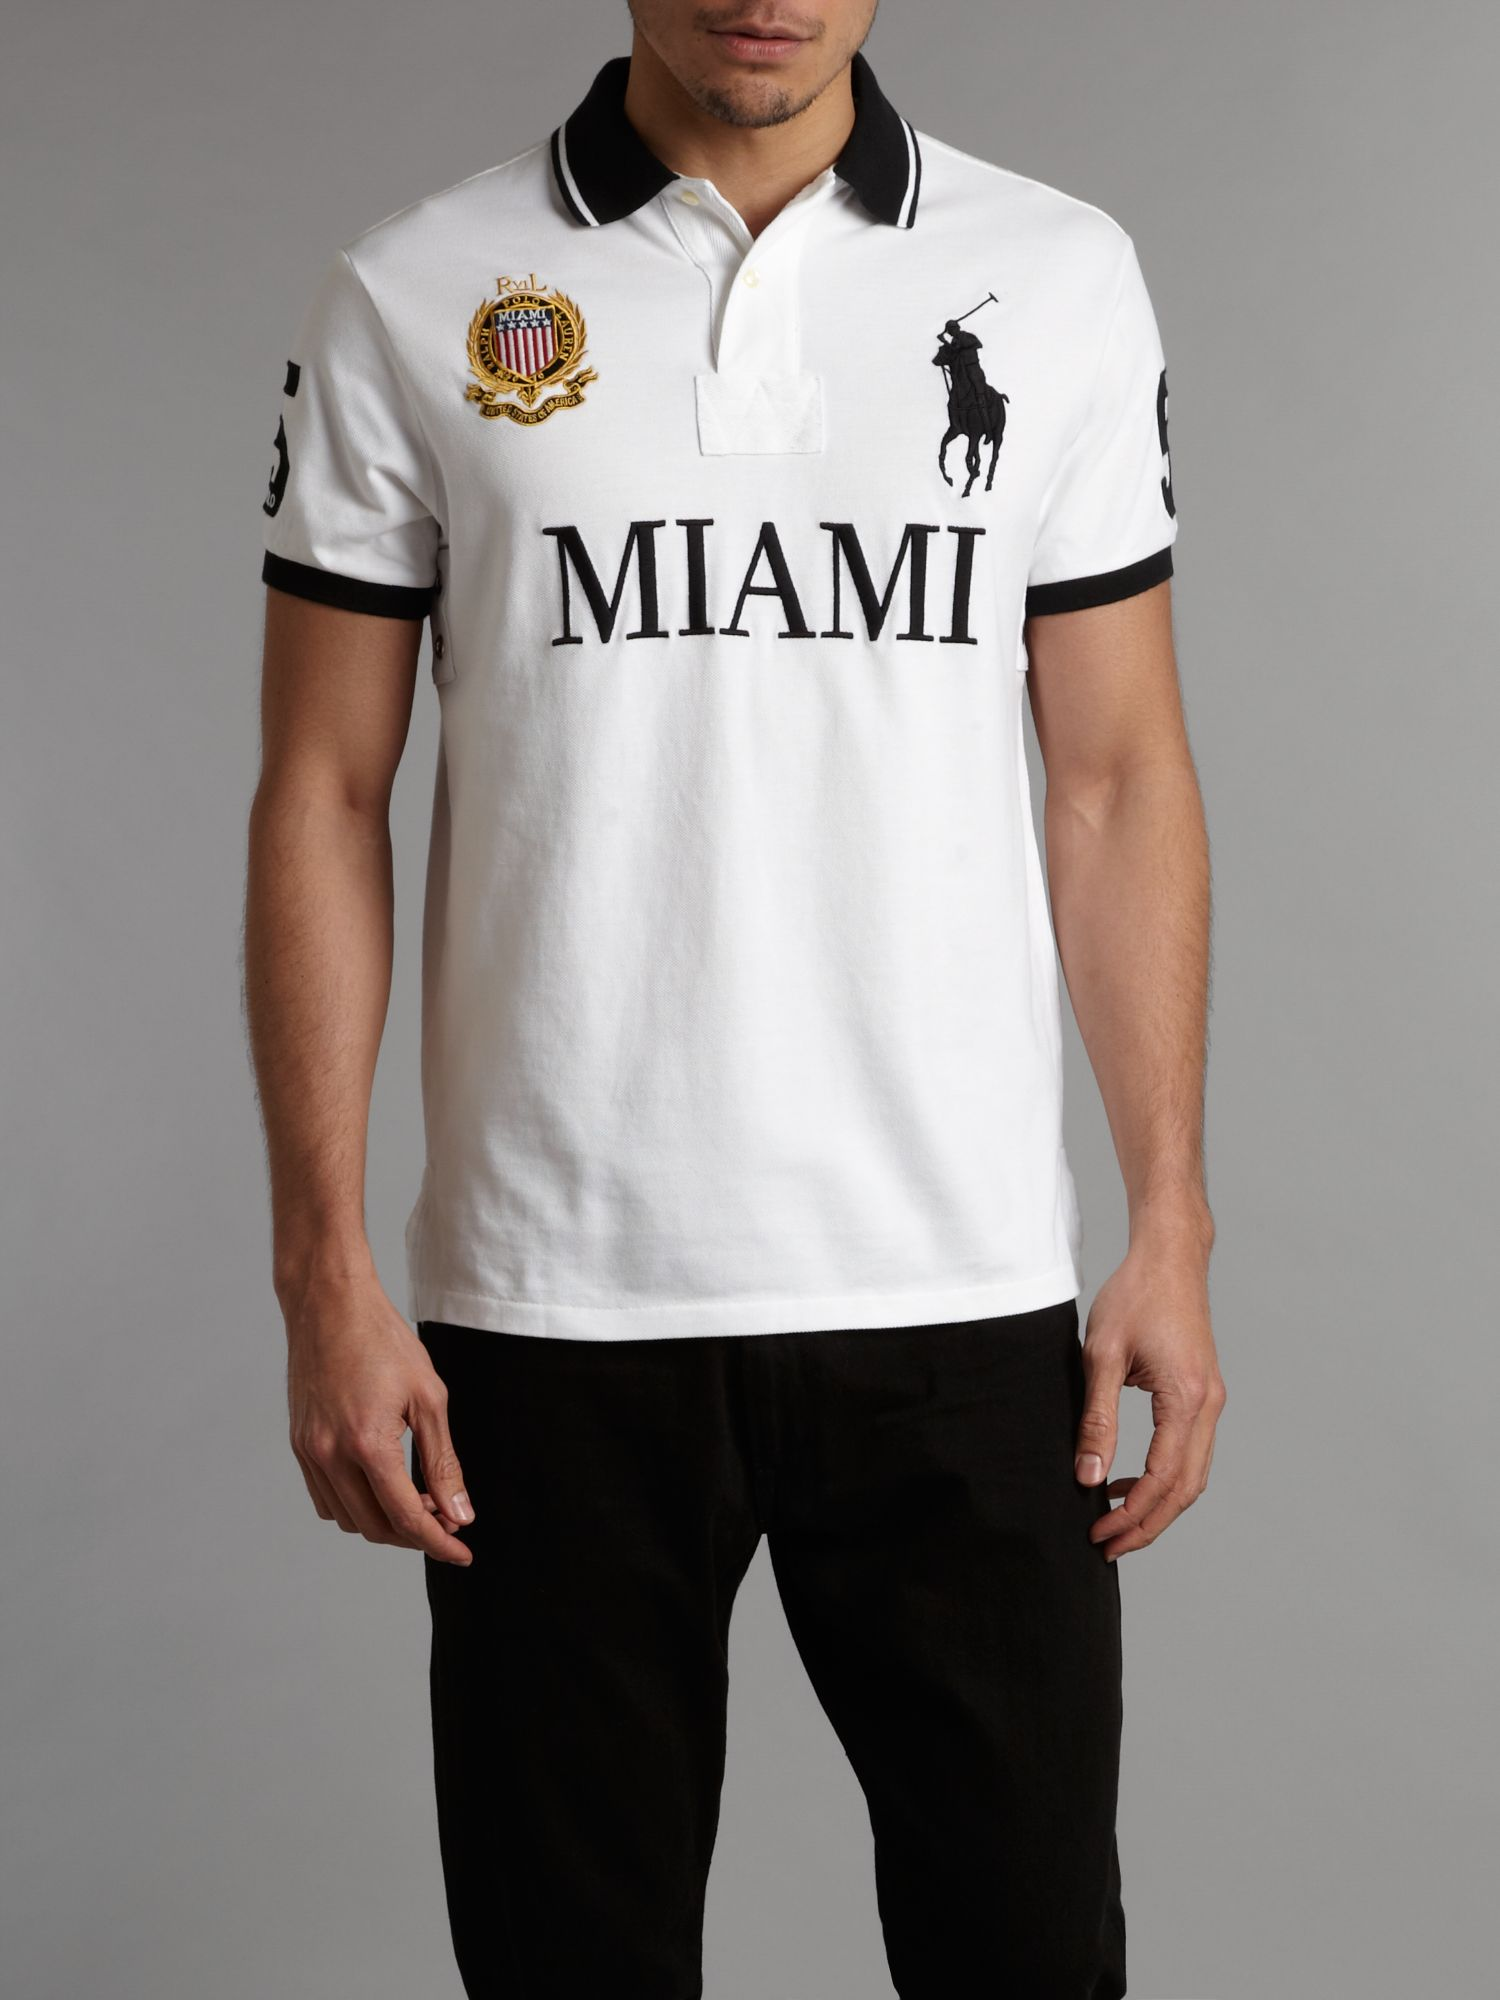 Miami Hurricanes Men's Apparel Score Miami Hurricanes Men's Apparel from lindsayclewisirah.gq Show your UM Hurricane devotion with authentic University of Miami Merchandise and Gear for Men featuring Miami Jerseys, T-Shirts, Hats and Sweatshirts for guys.